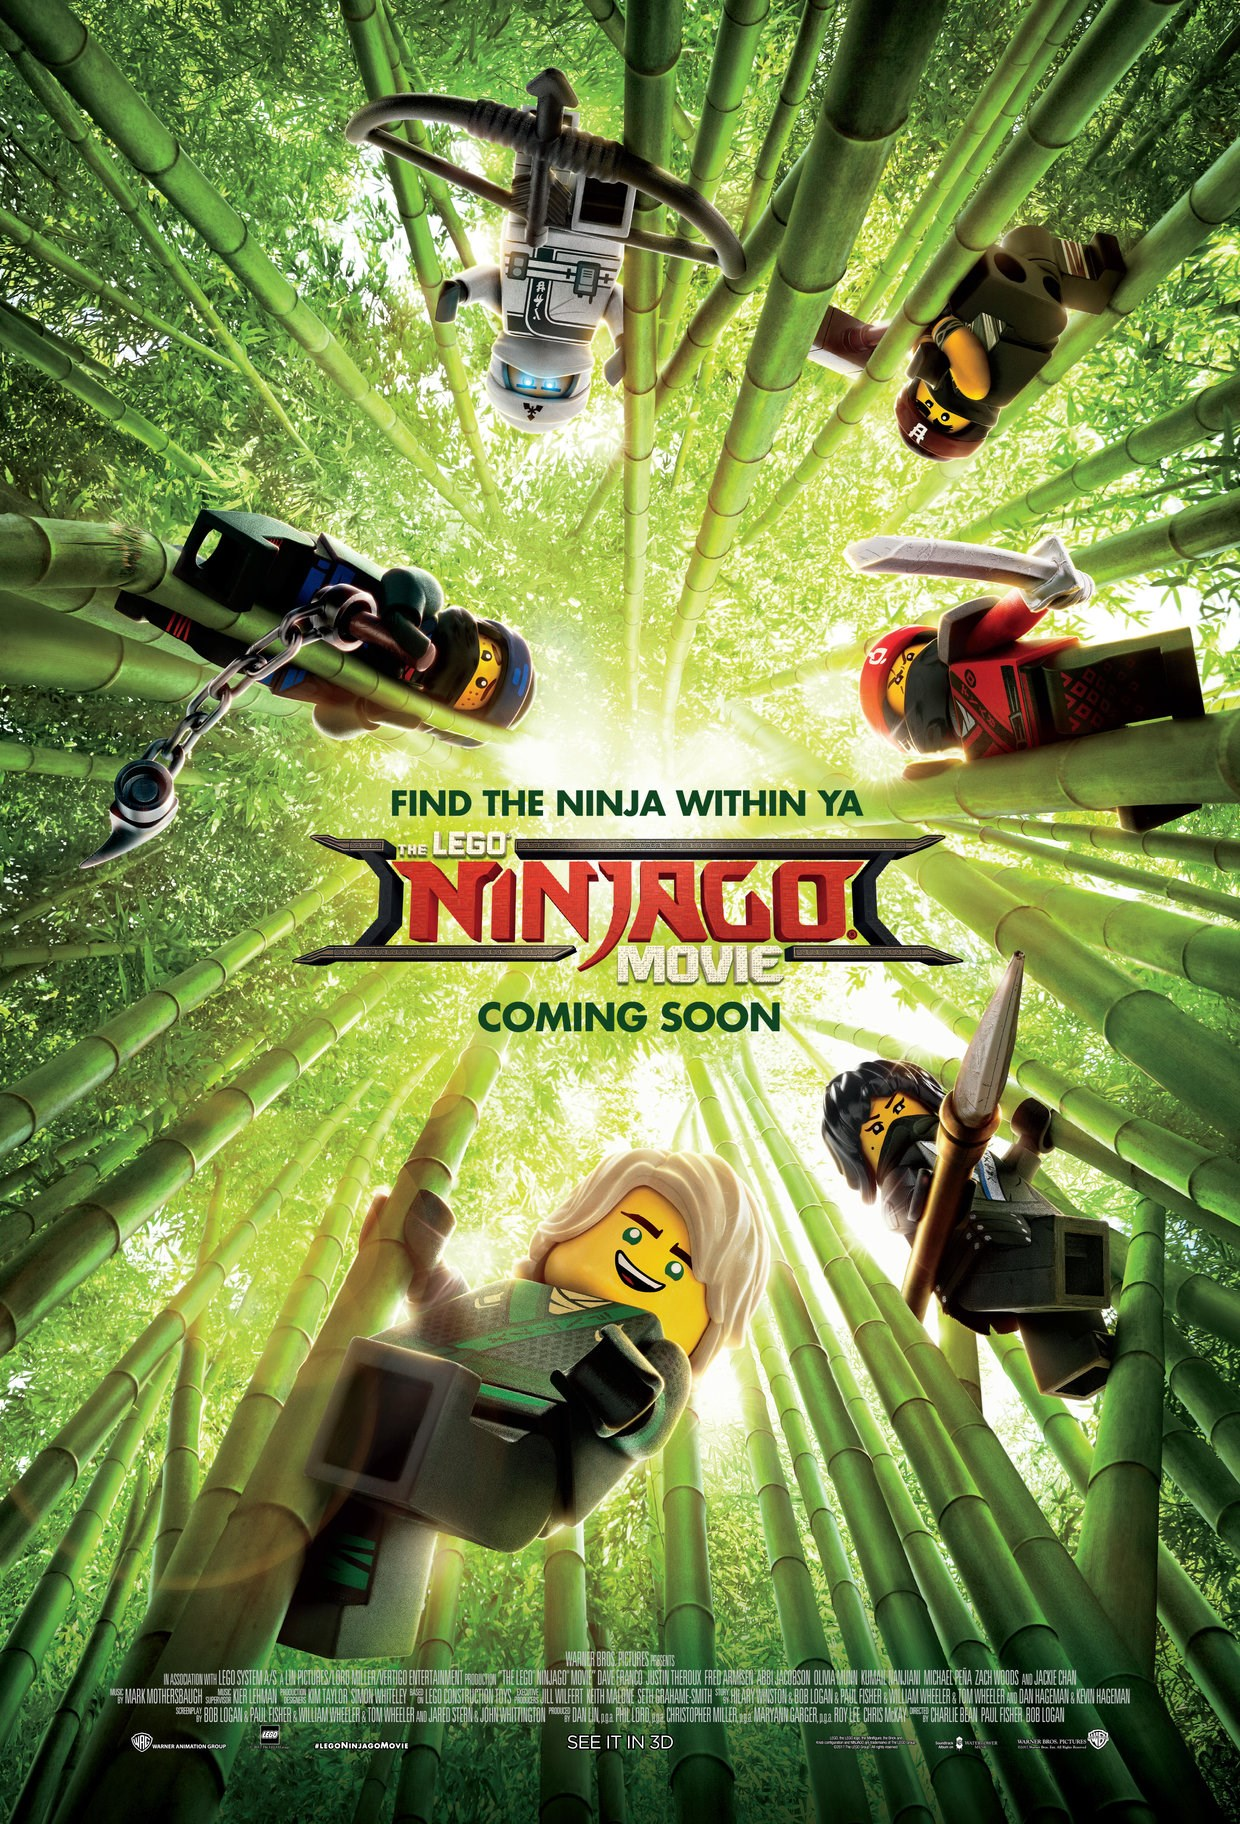 LEGO NINJAGO MOVIE, THE now showing at Cavendish Square